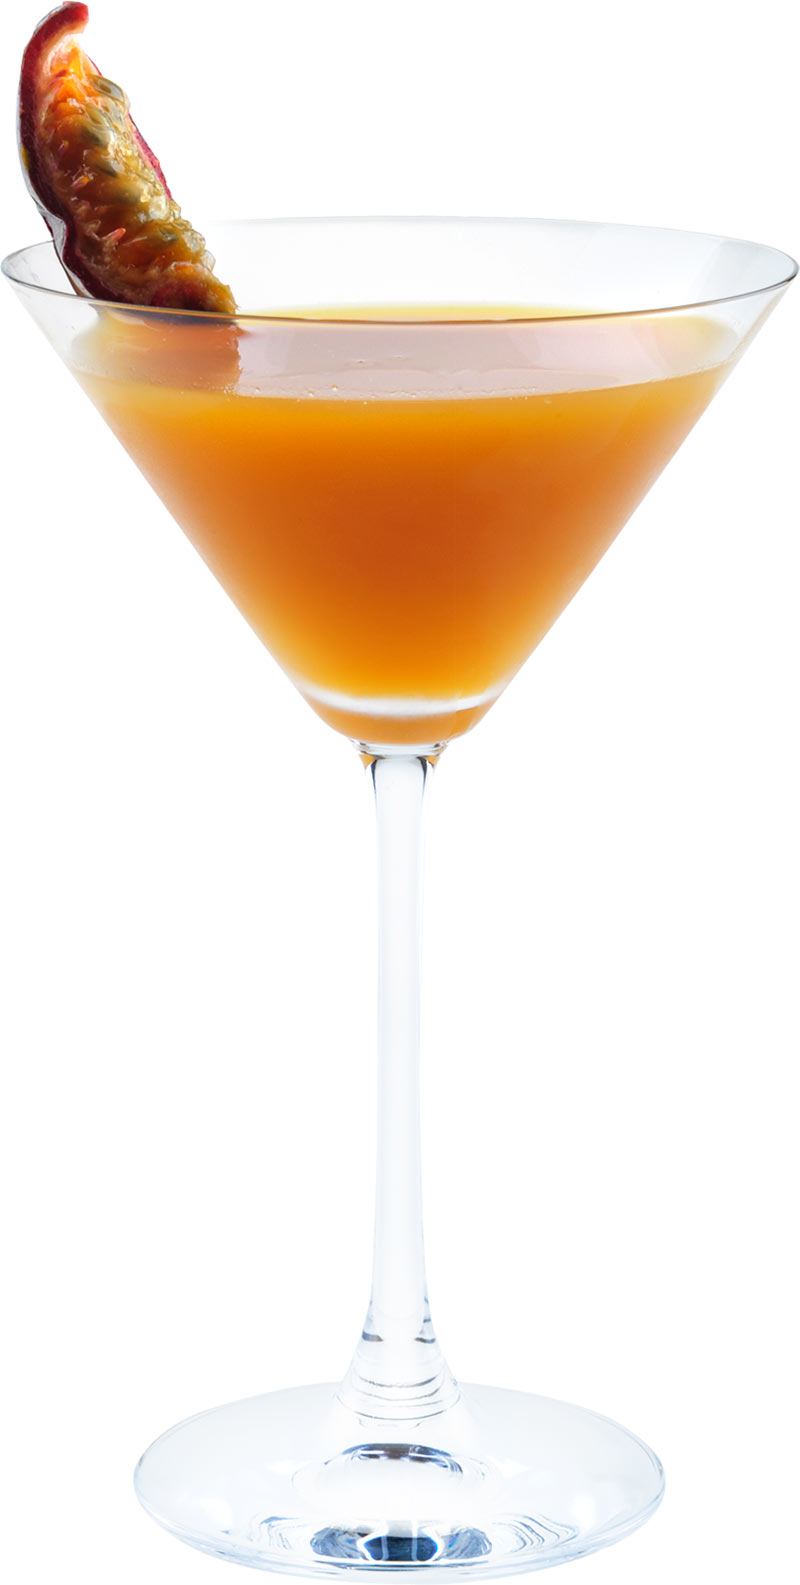 Comment préparer le cocktail Passion gingembre